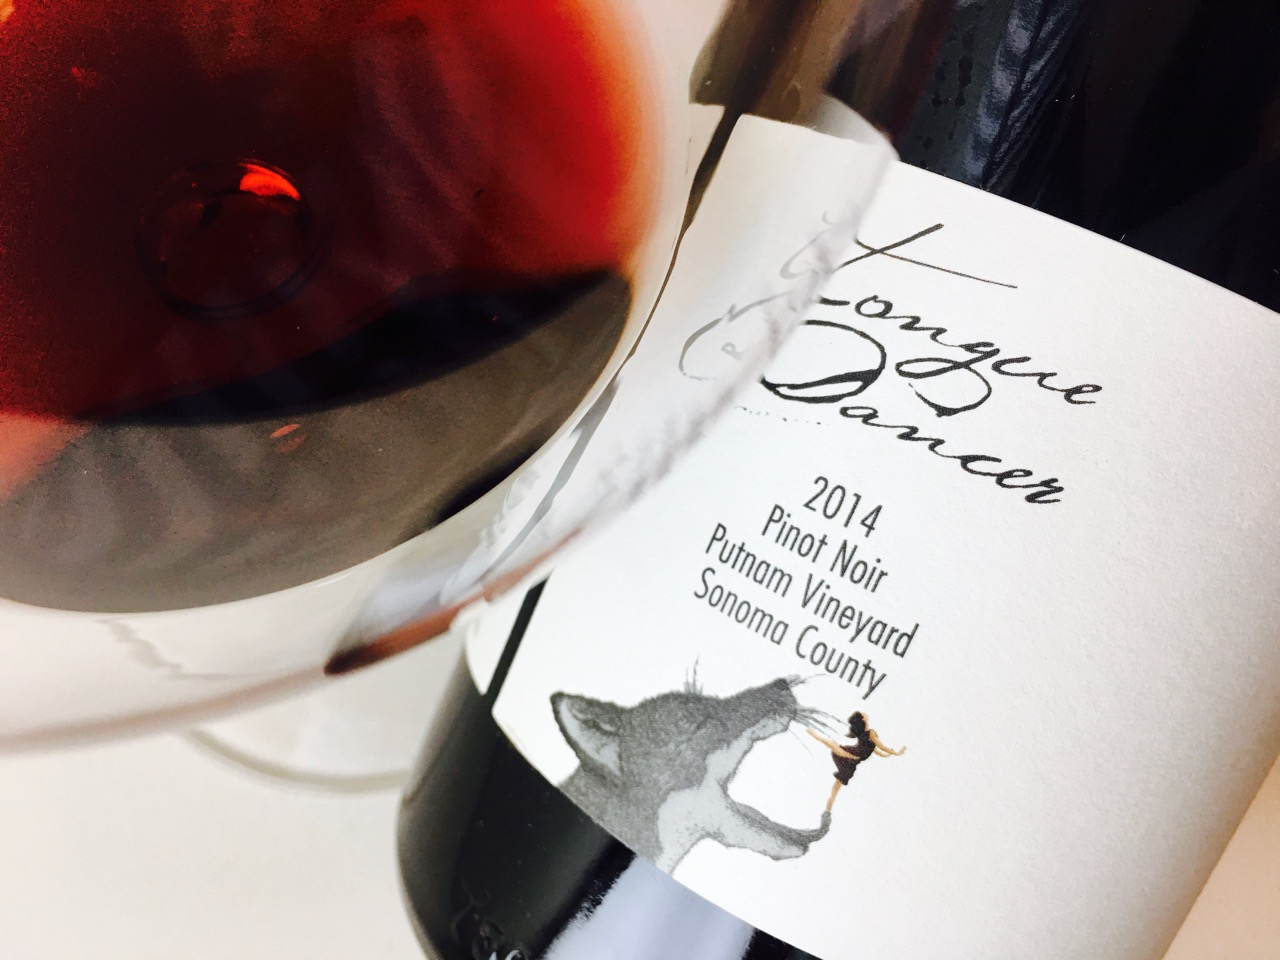 2014 Tongue Dancer Pinot de Ville Pinot Noir Putnam Vineyard Sonoma County